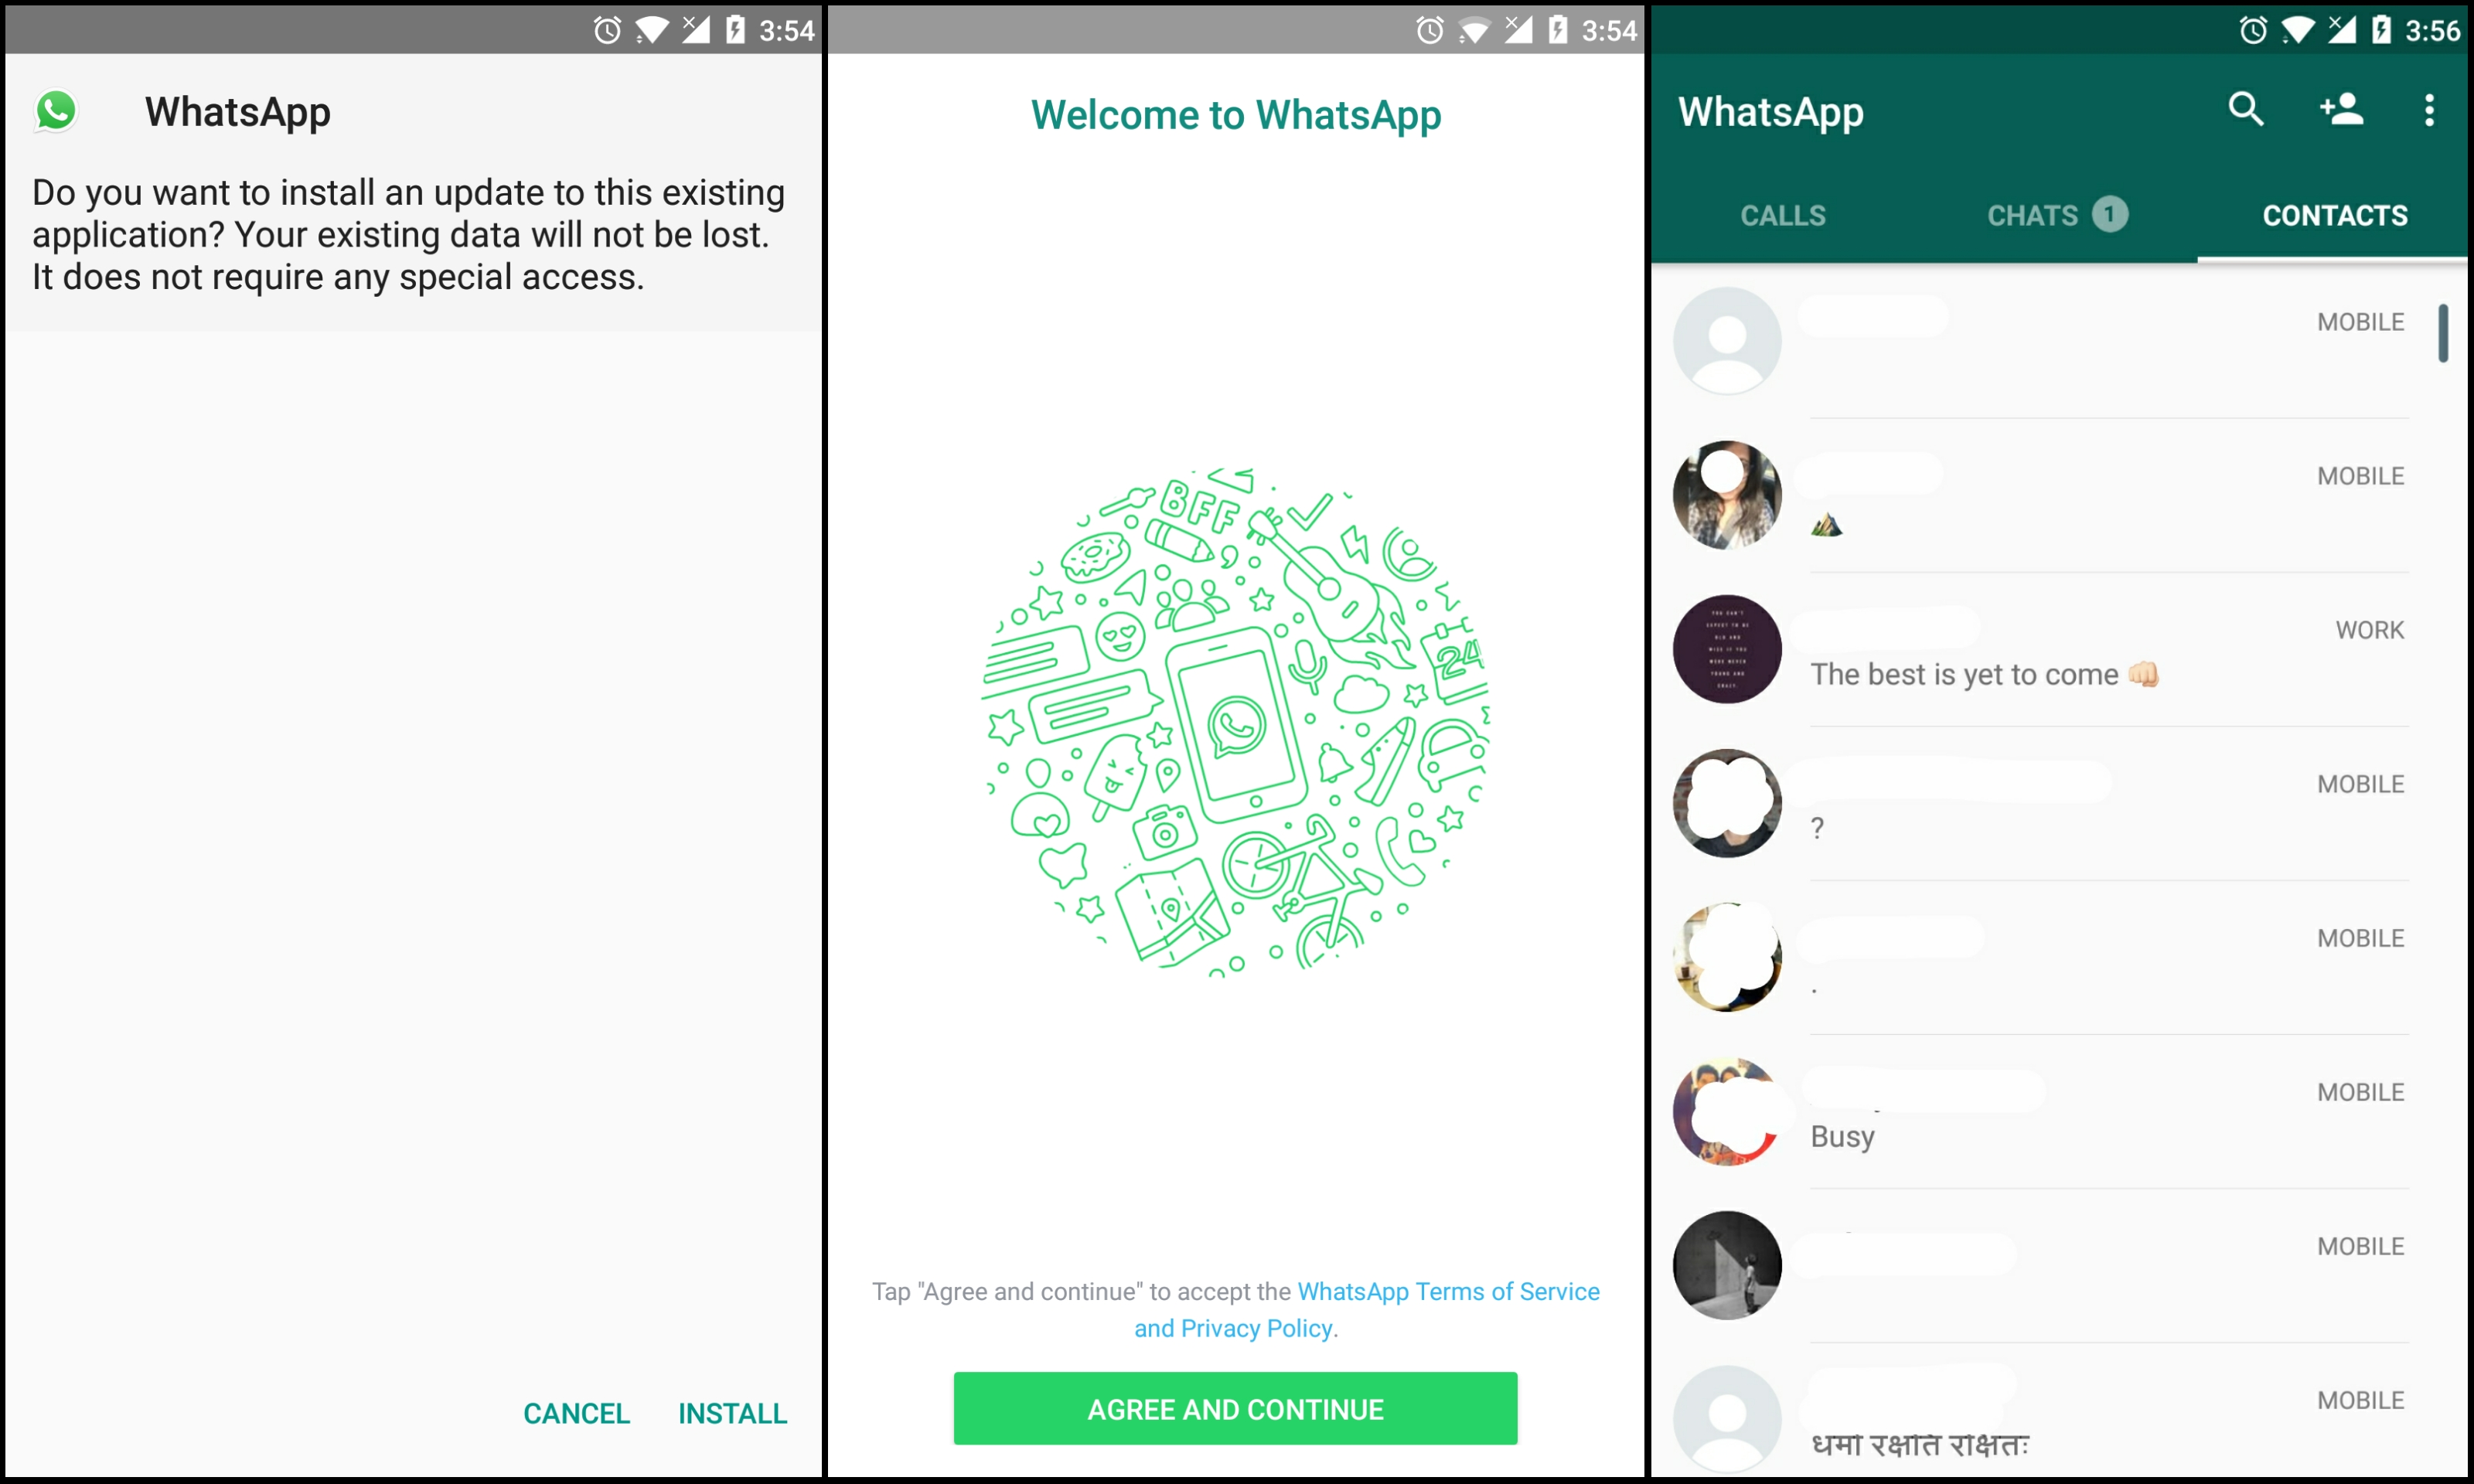 Whatsapp is bringing back text statuses after receiving flak from users